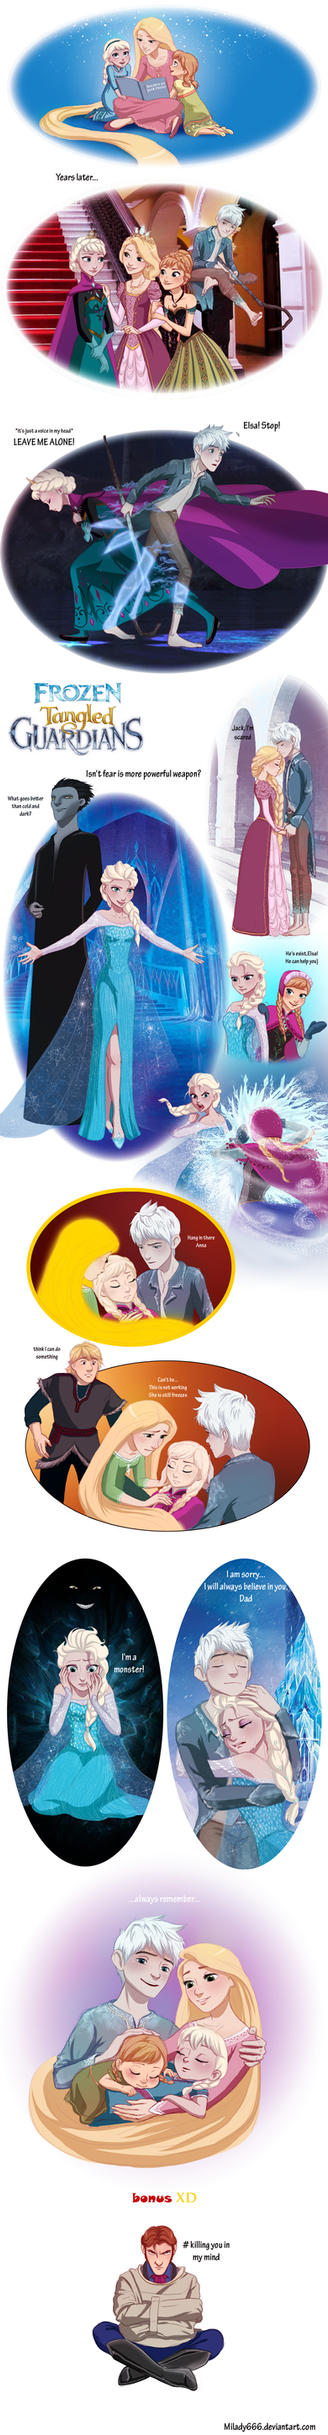 Frozen Tangled Guardians_alternative story by Milady666